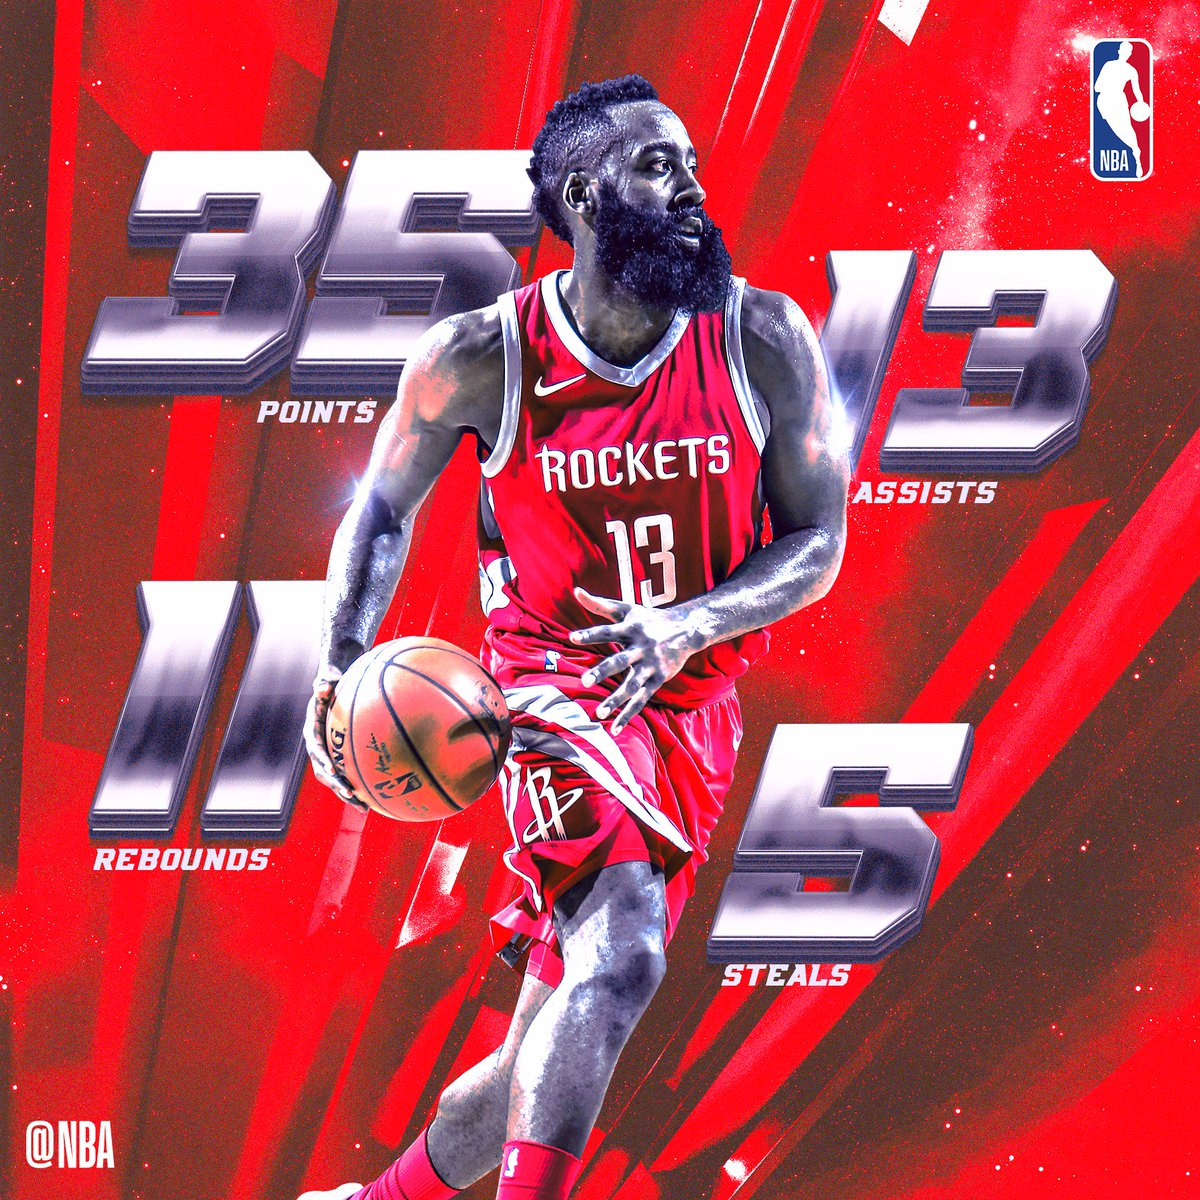 James Harden fills up the stat sheet, guides @HoustonRockets to 4th straight win with 35p, 13a, 11r & 5s. #SAPStatLineOfTheNight